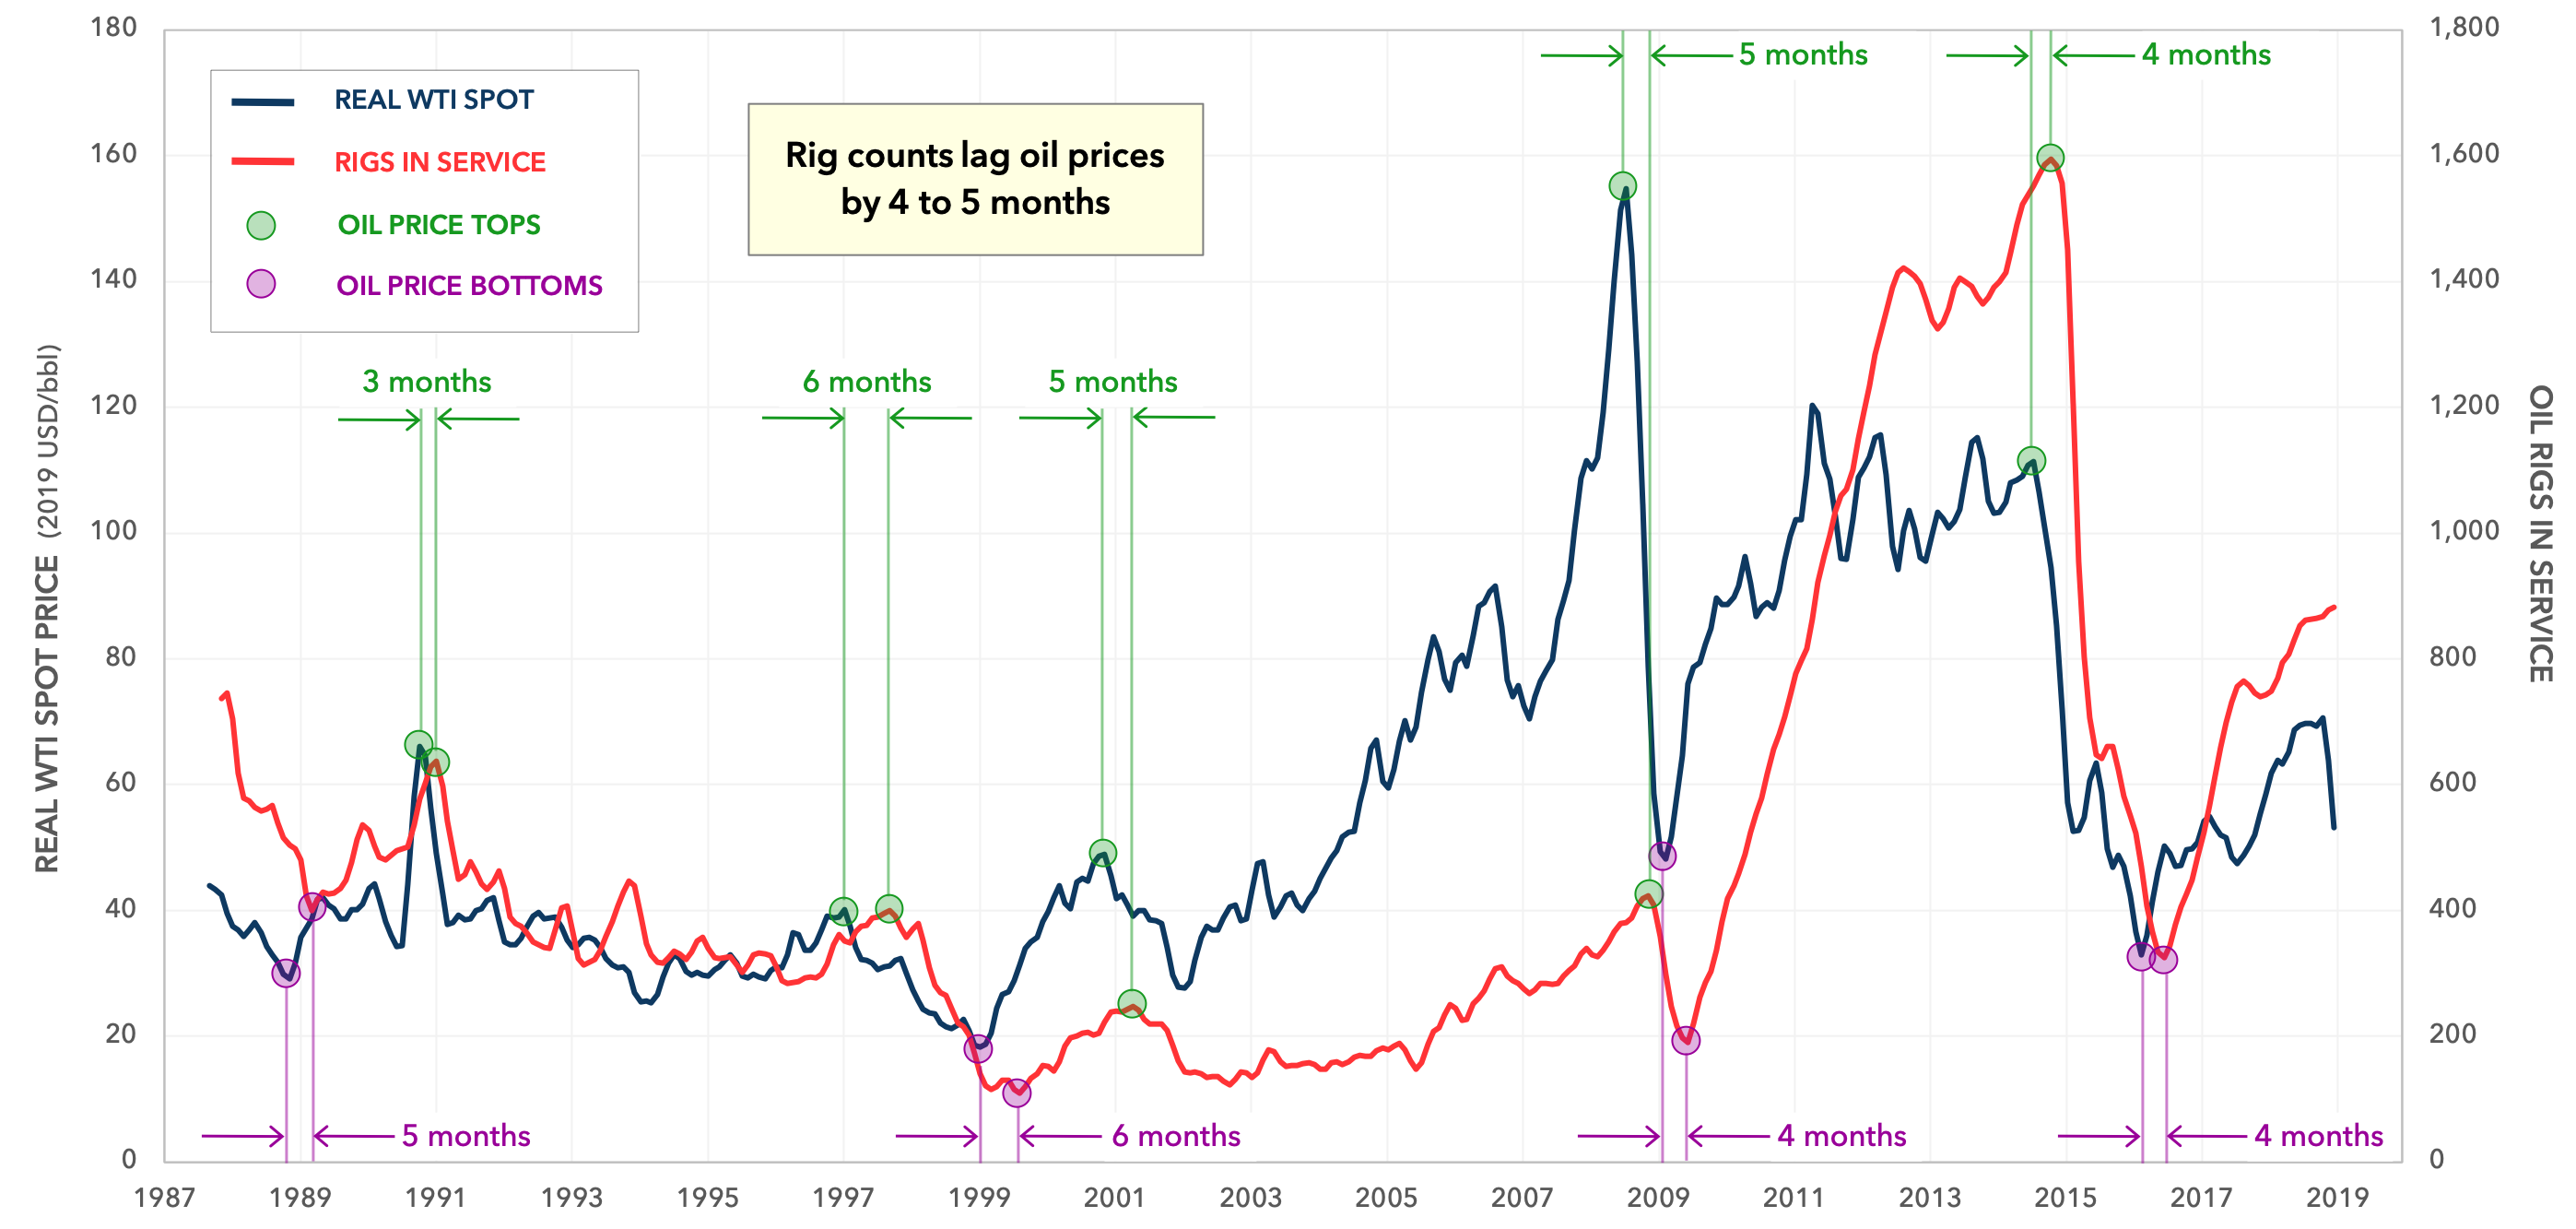 INFLATION-ADJUSTED WTI PRICE VERSUS RIG COUNTS